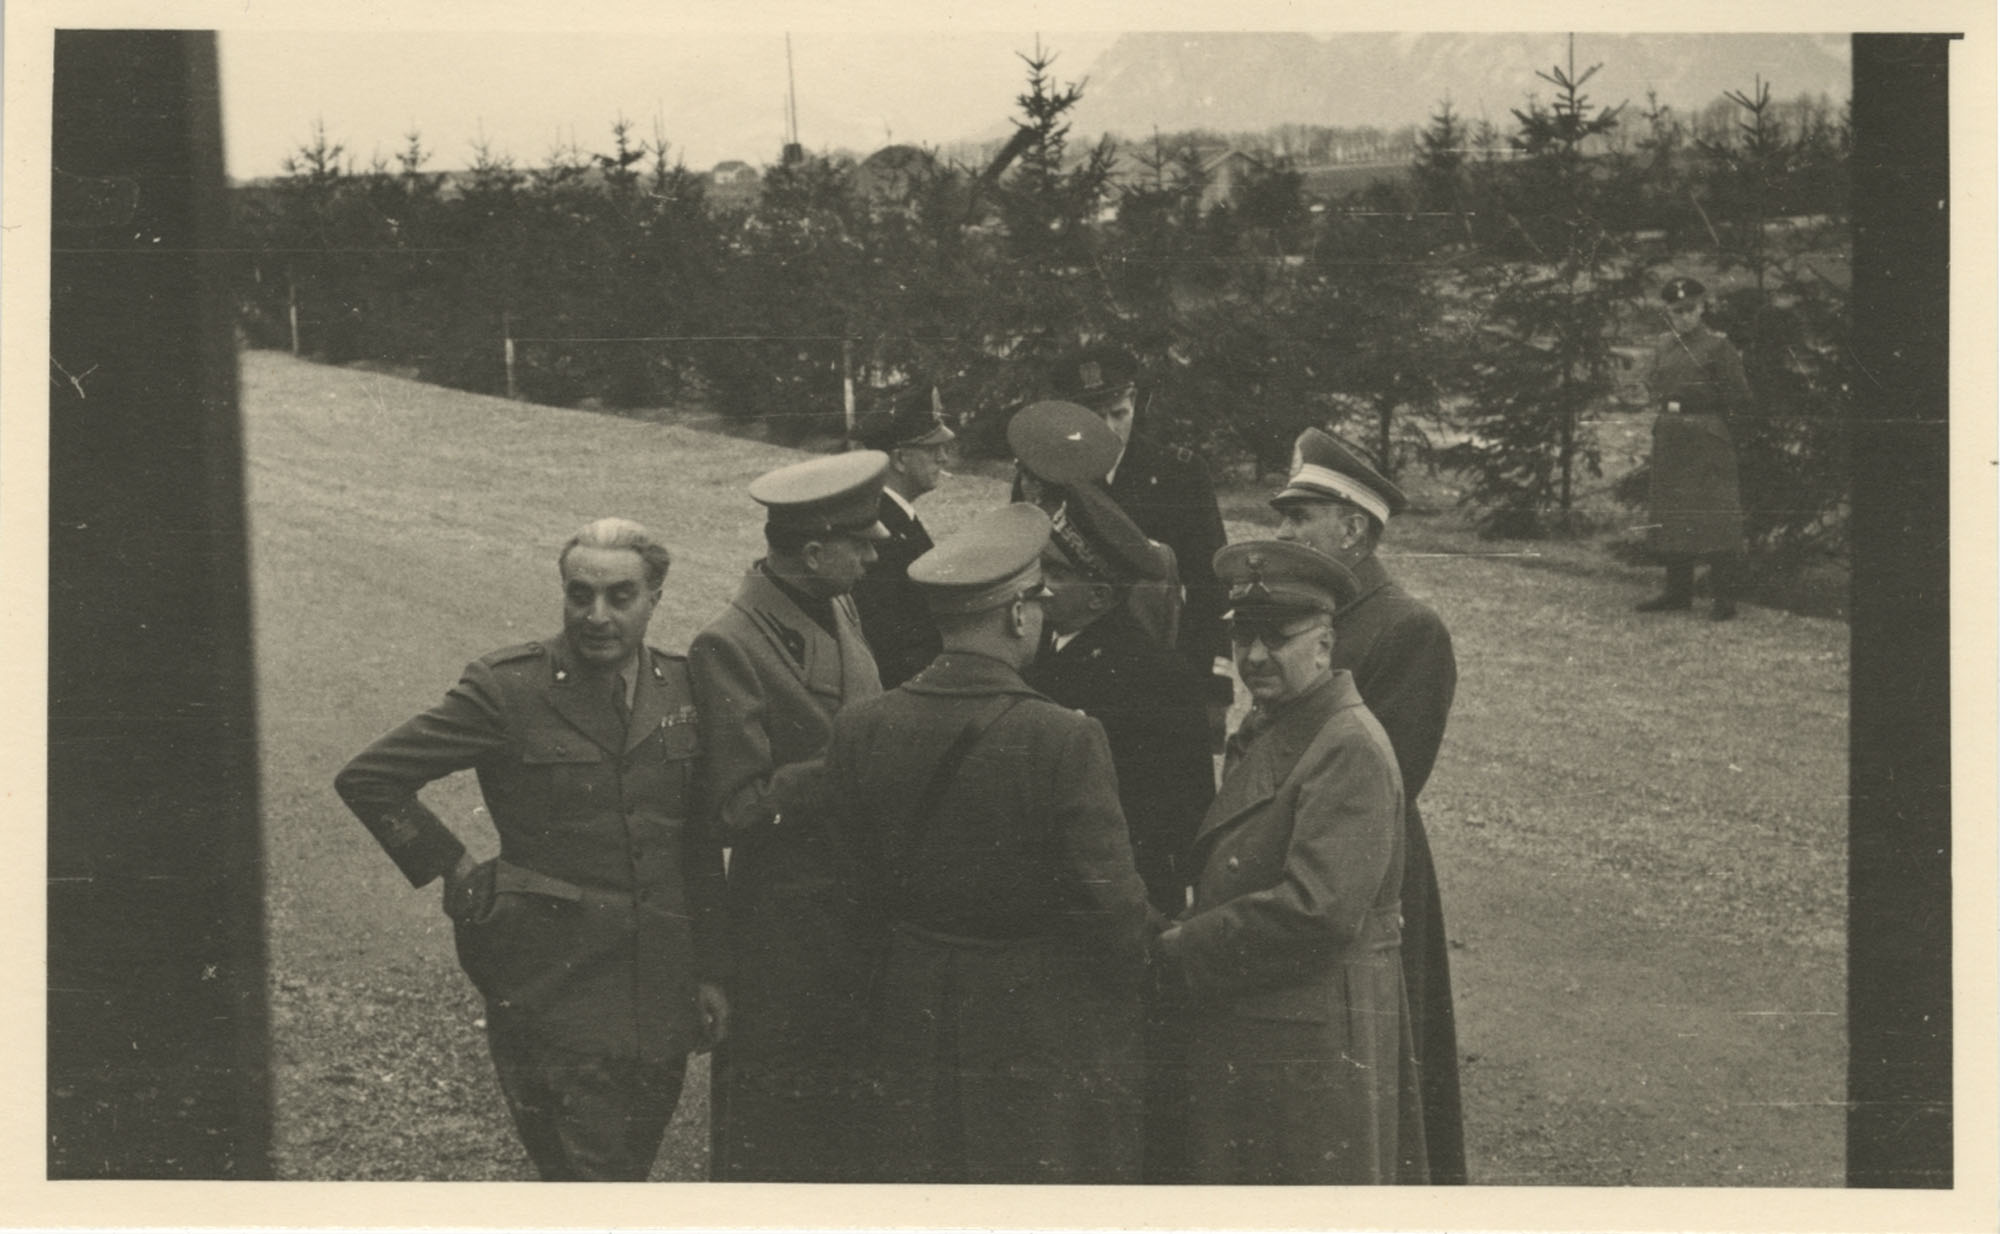 Mario Pansa greeting military personnel, Photograph 6